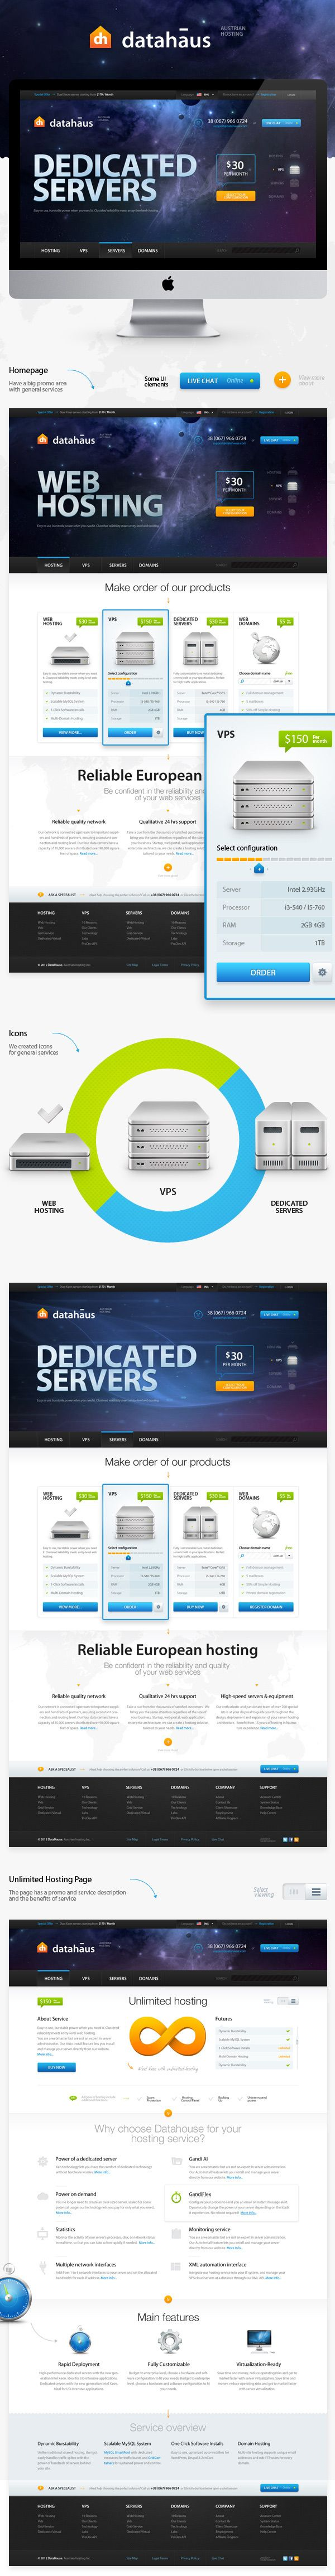 datahaus-web-hosting-design